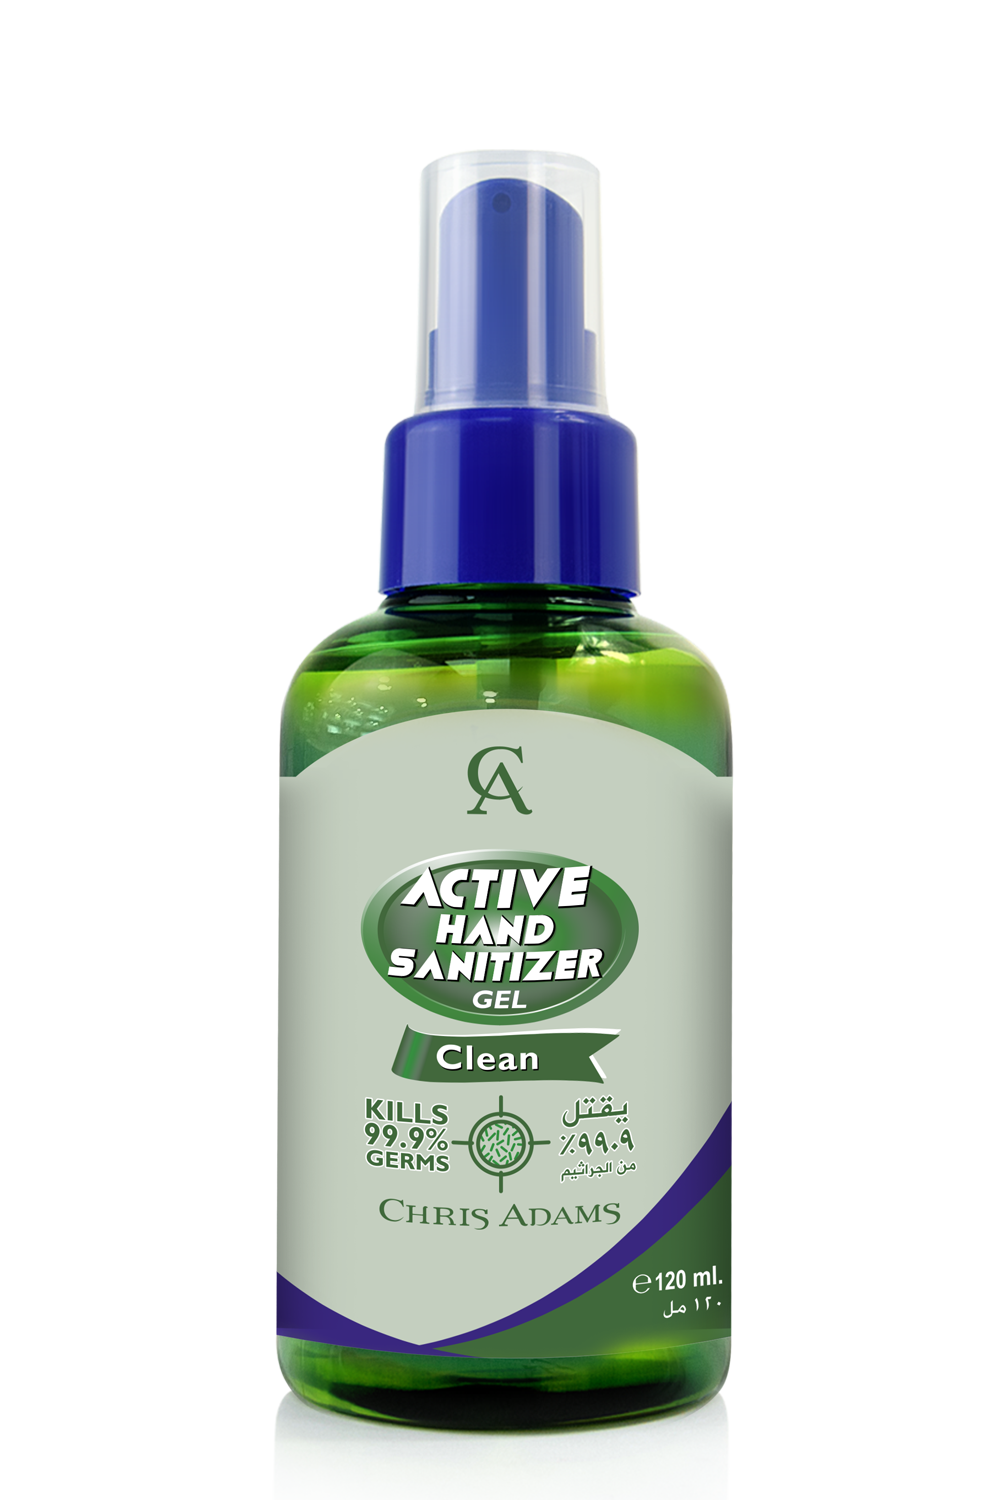 ACTIVE HAND SANITIZER 120ml GEL CLEAN